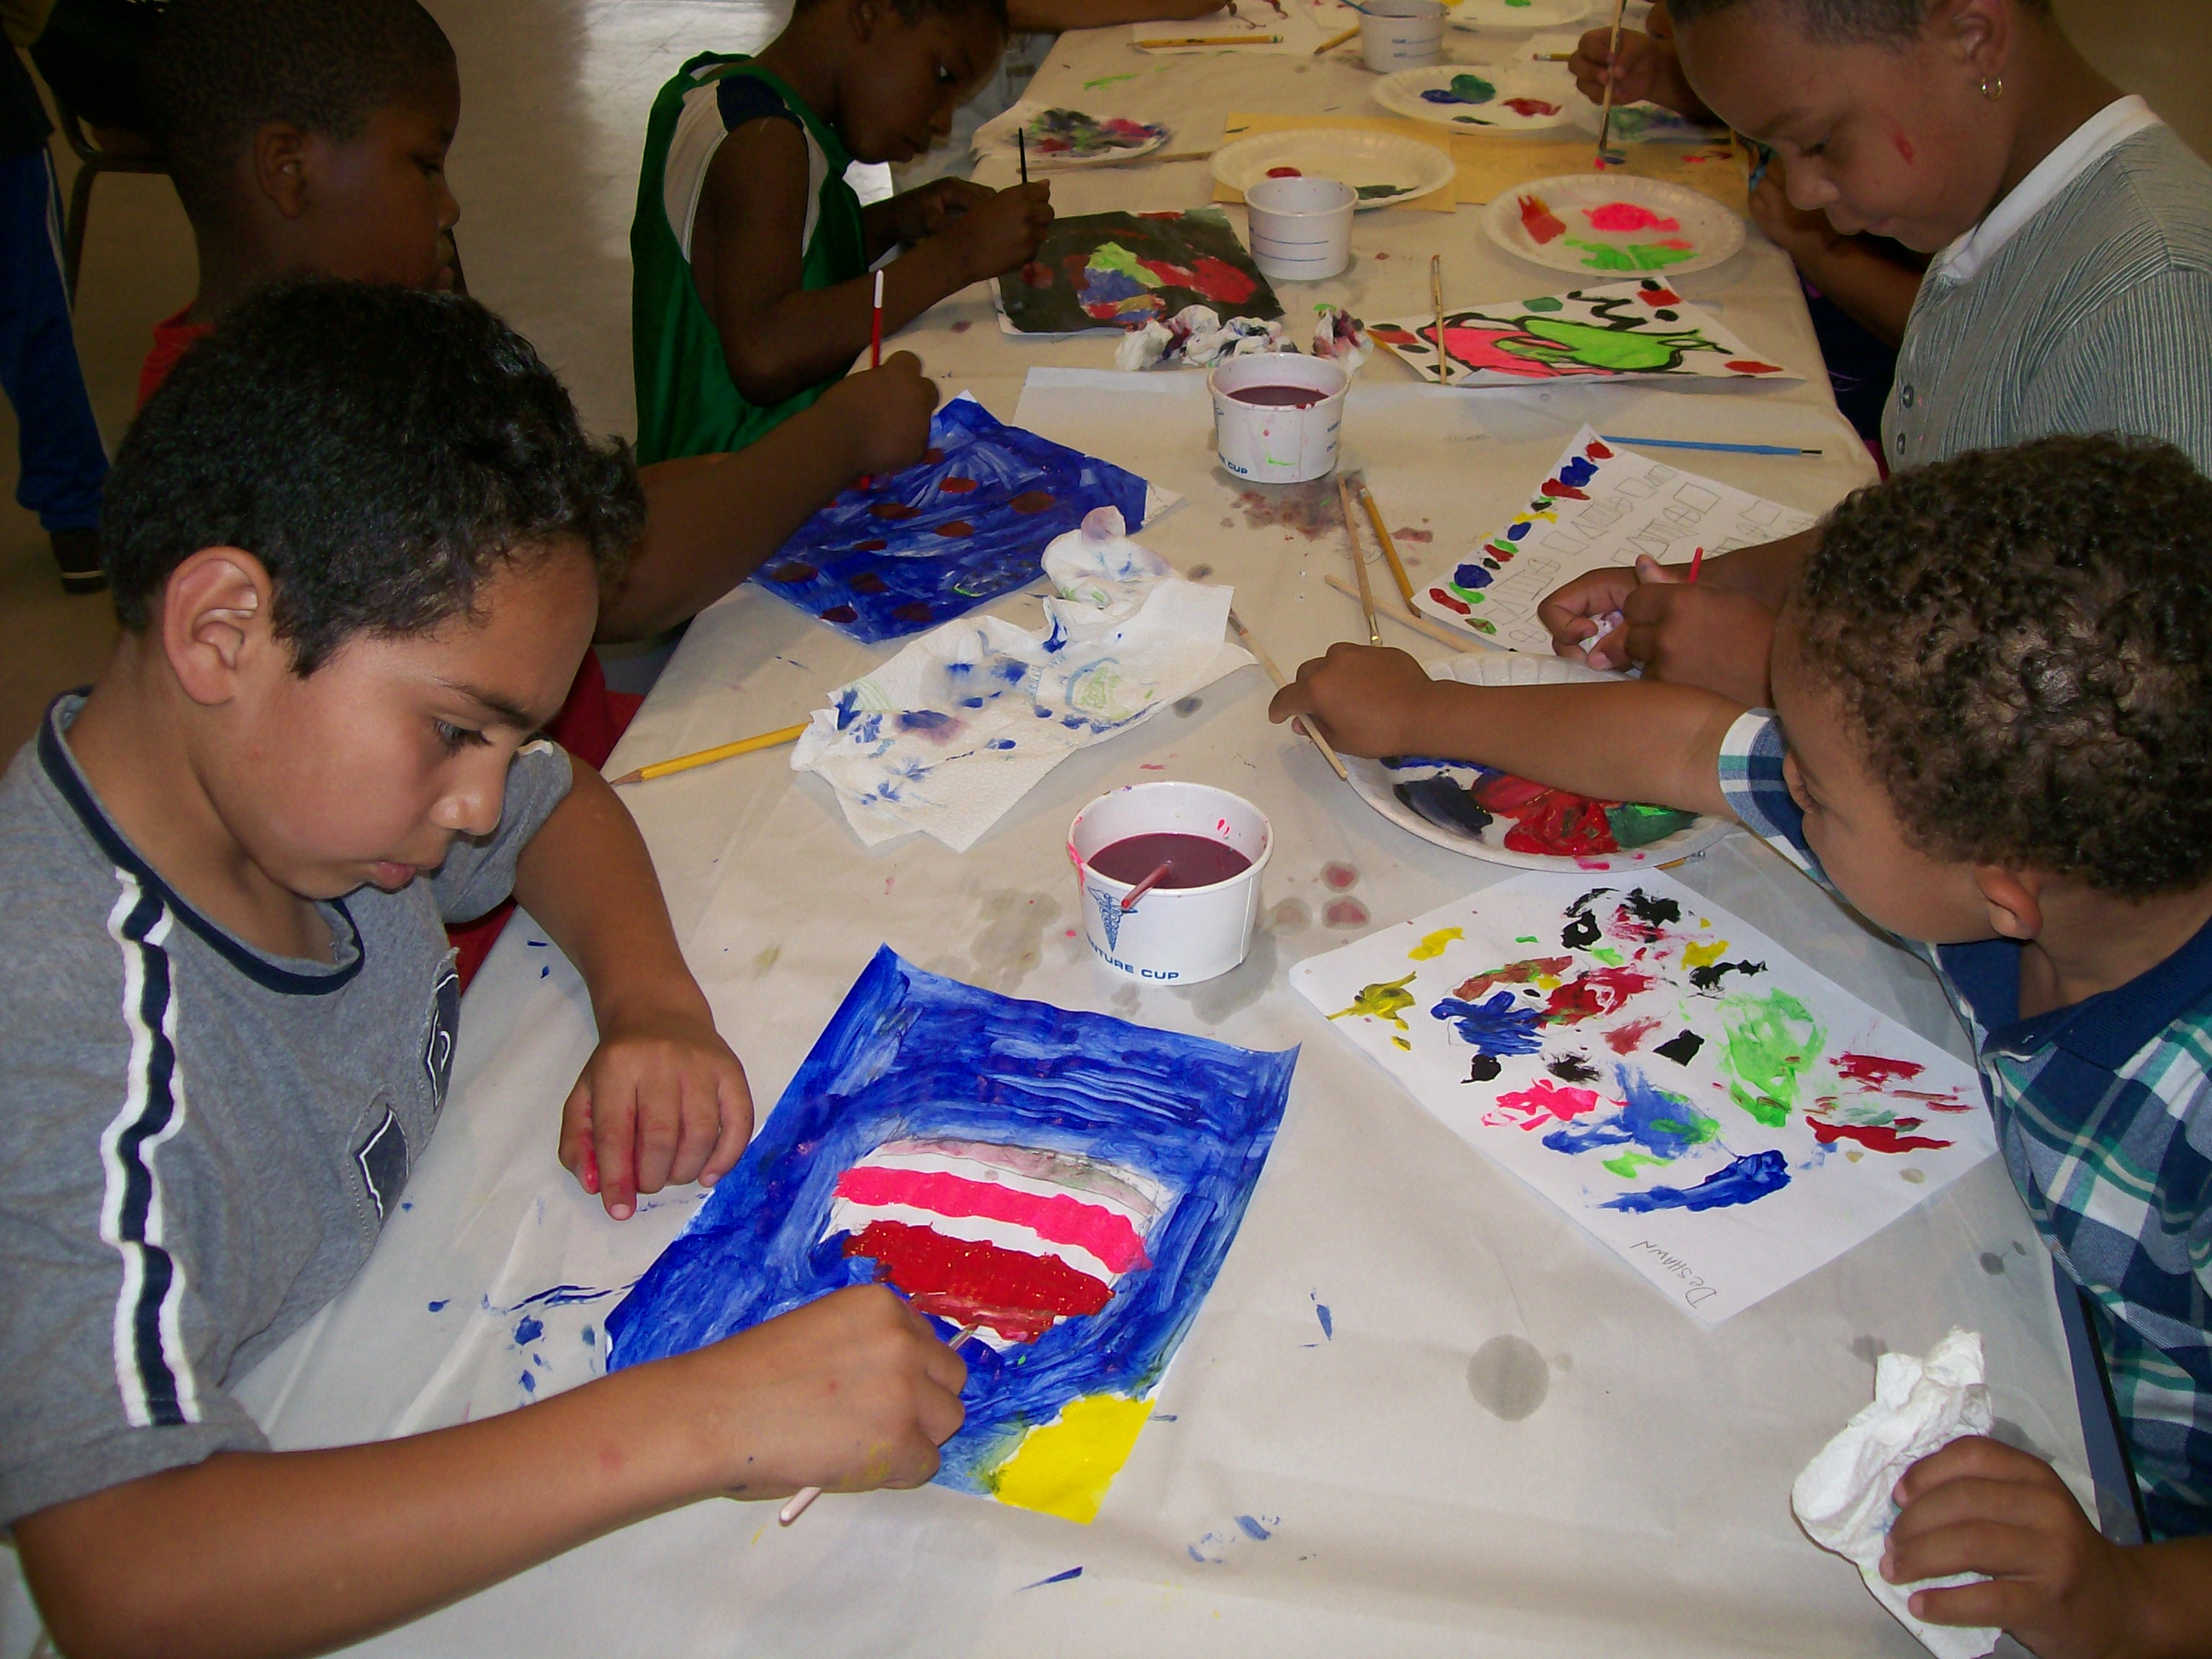 Children enjoy arts and crafts at the Pigeon Community Multicultural Development Center.